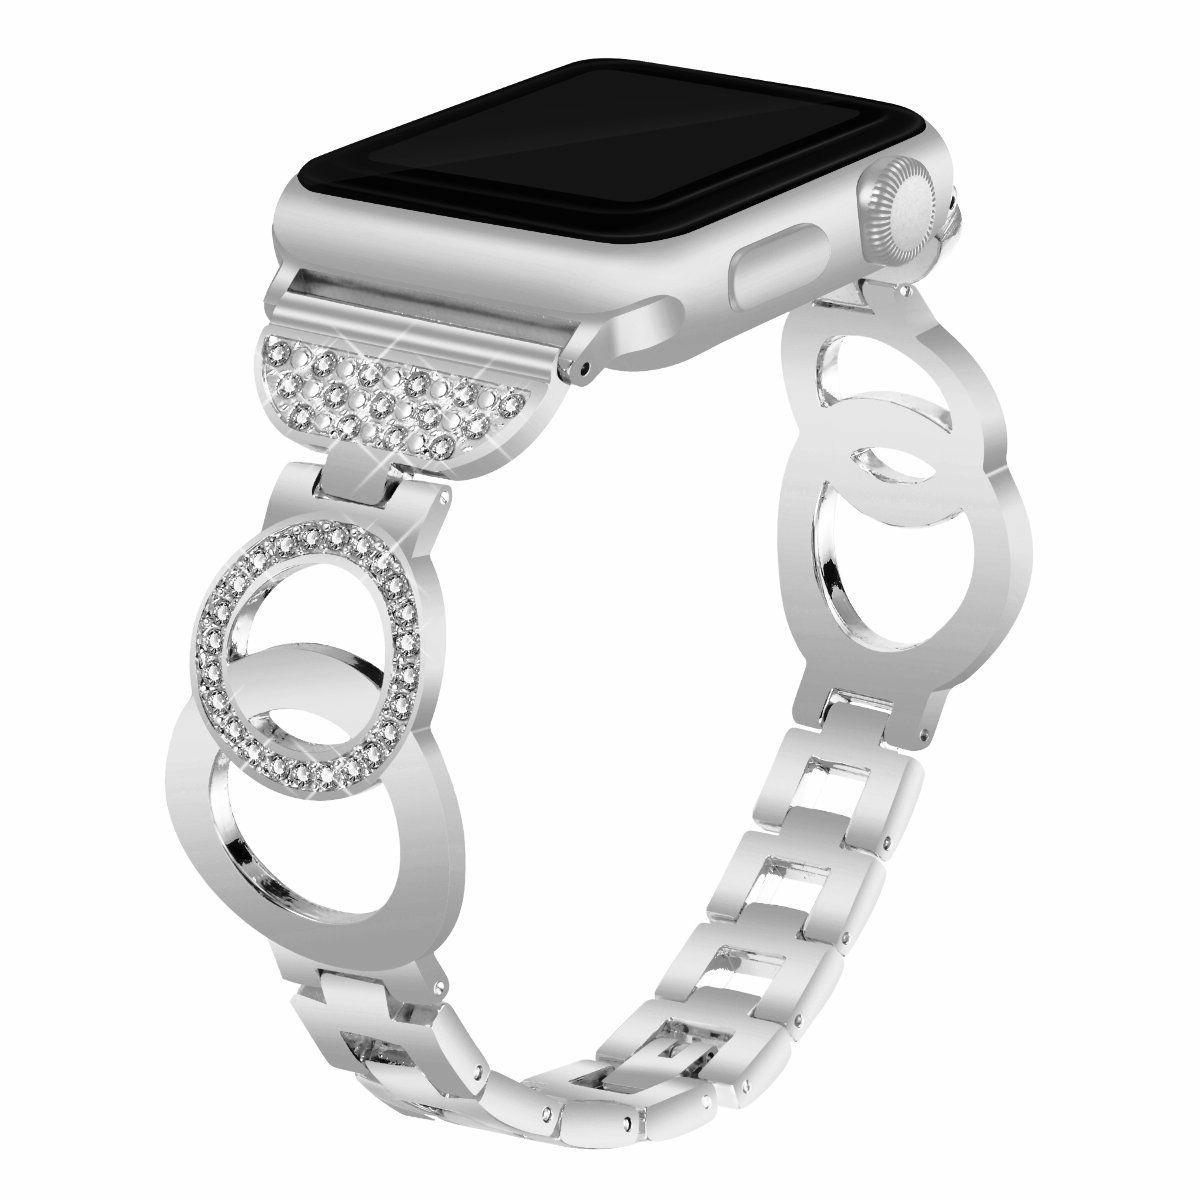 iwatch stainless steel replacement band 42mm apple